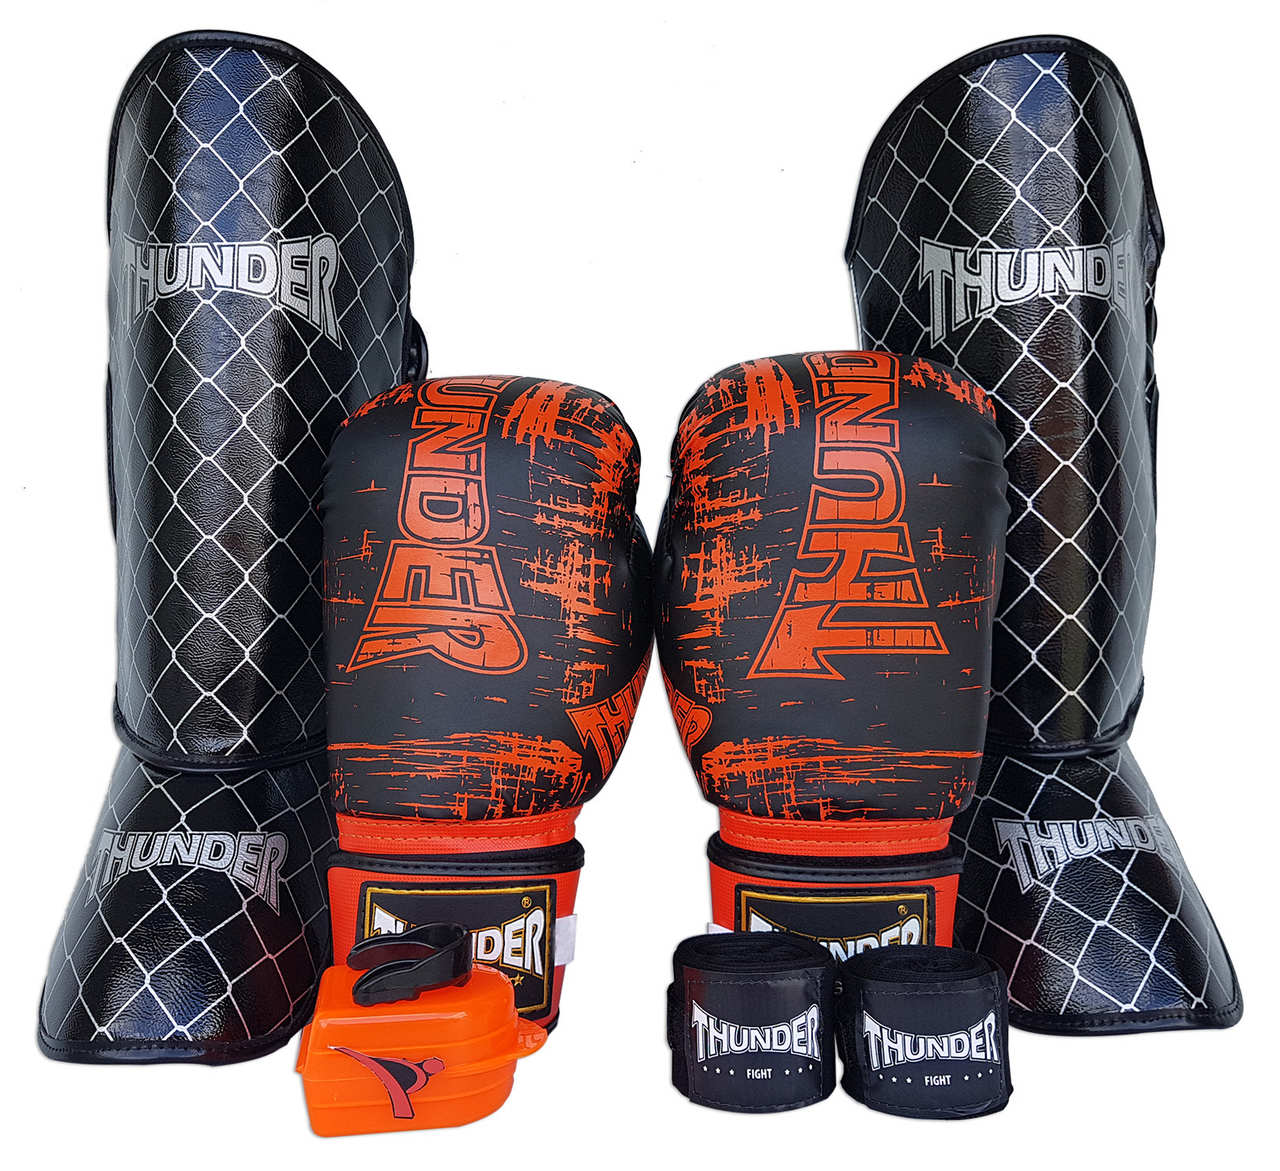 Kit de Muay Thai / Kickboxing 16oz - Preto - Thunder Fight - PRALUTA SHOP